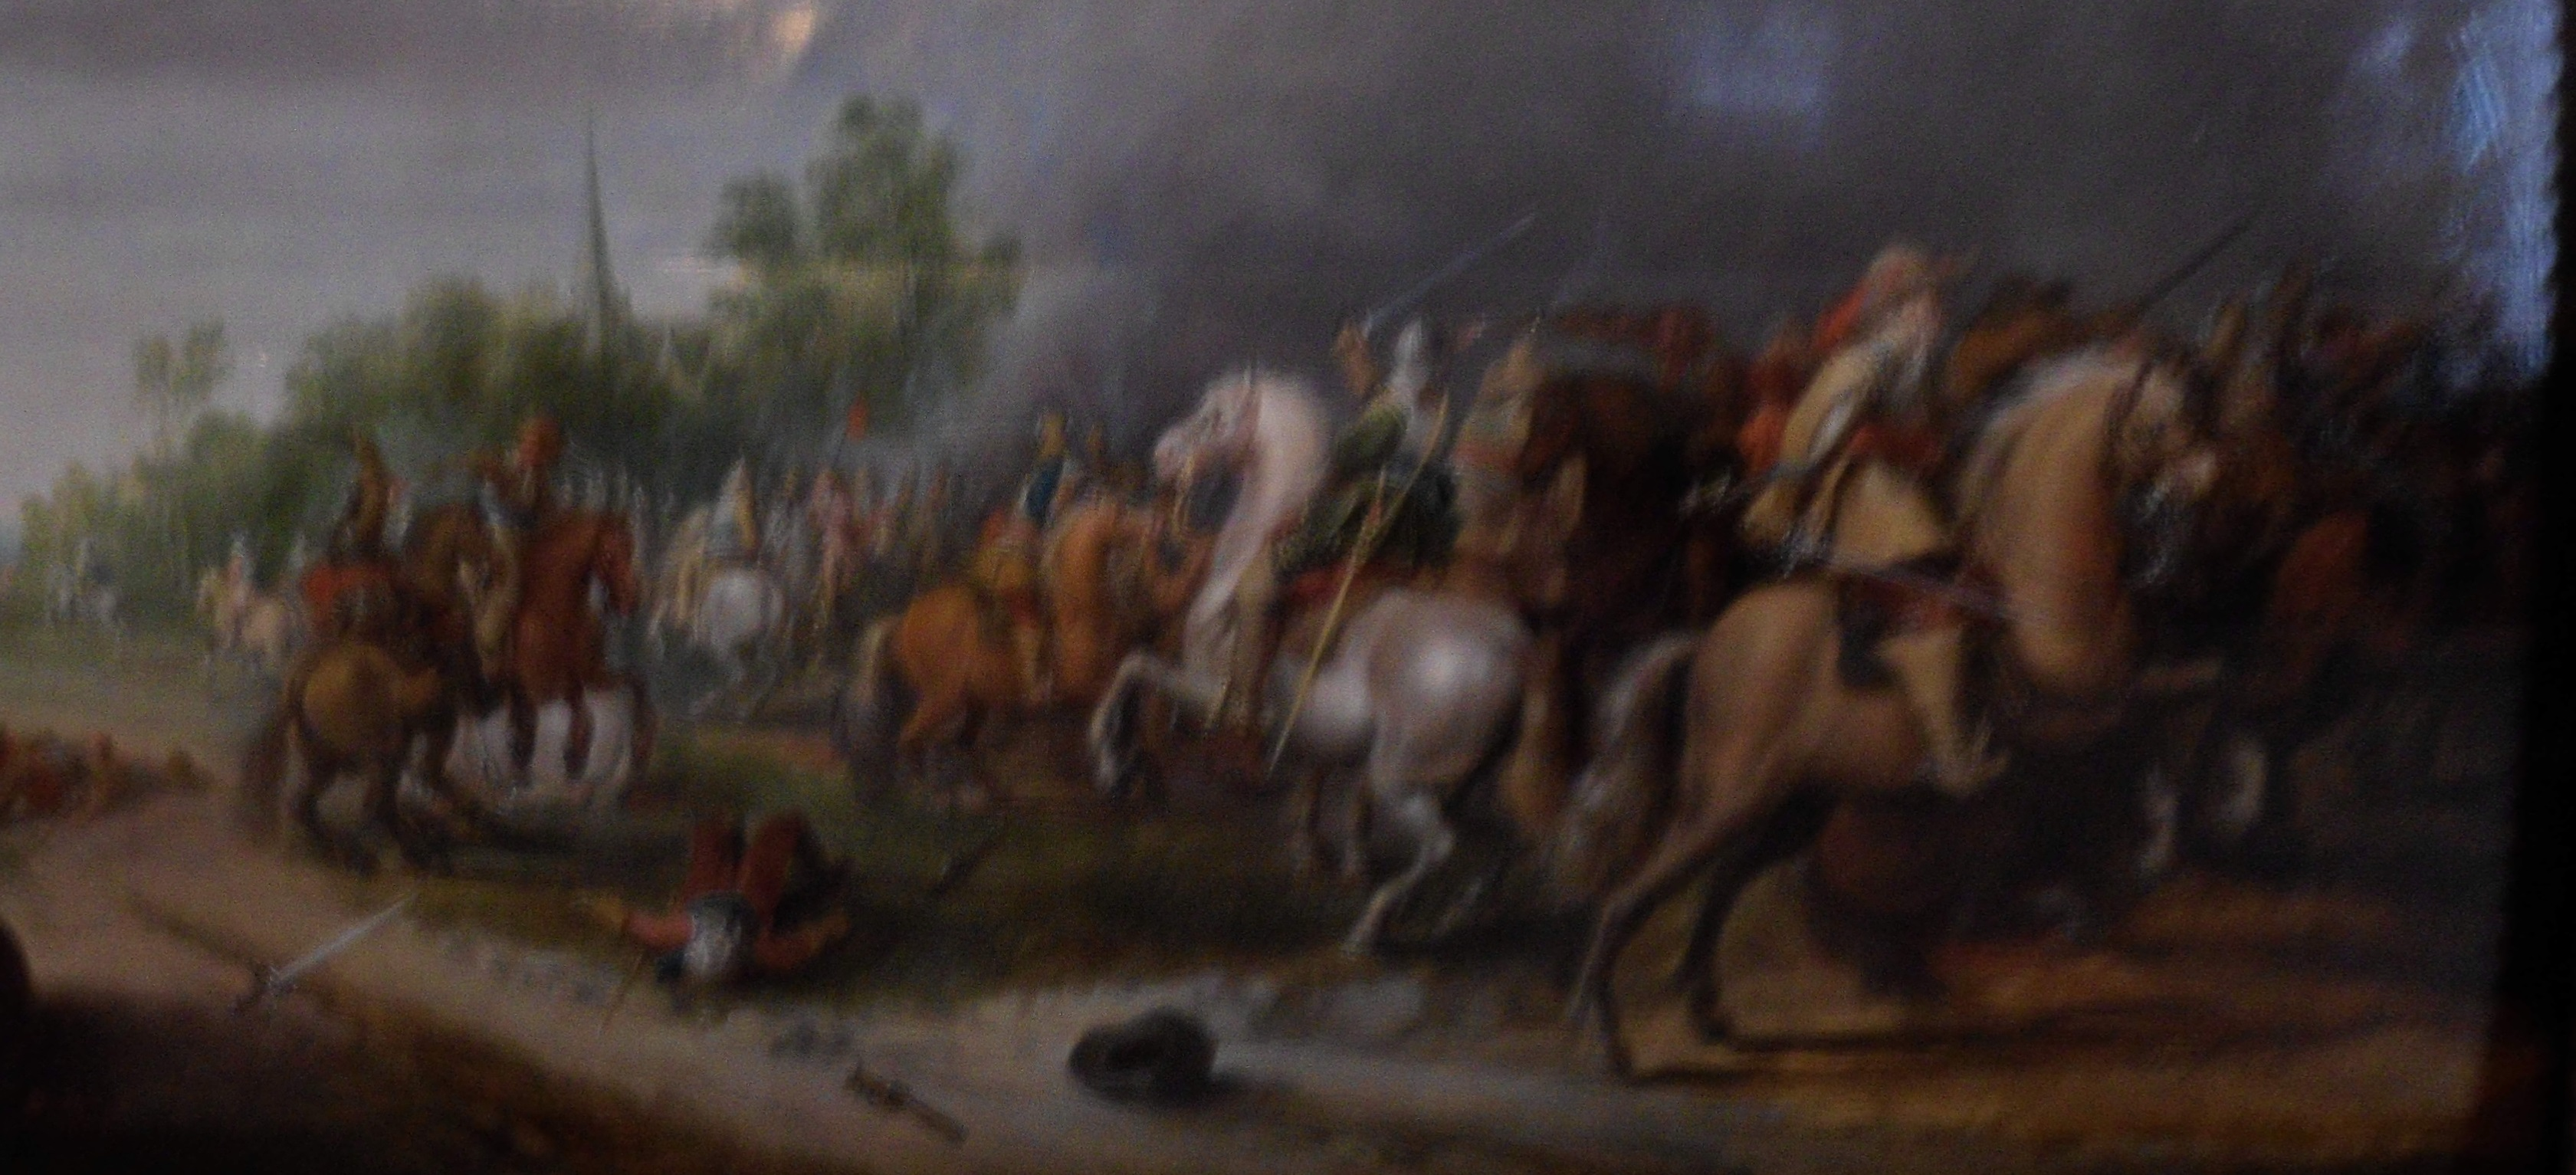 On the Internet as in a cavalry fight, there are too many things flashing in front of your face.  Unknown painting of an incident in the Thirty Years' War, Heeresgeschichtliche Museum, Wien.